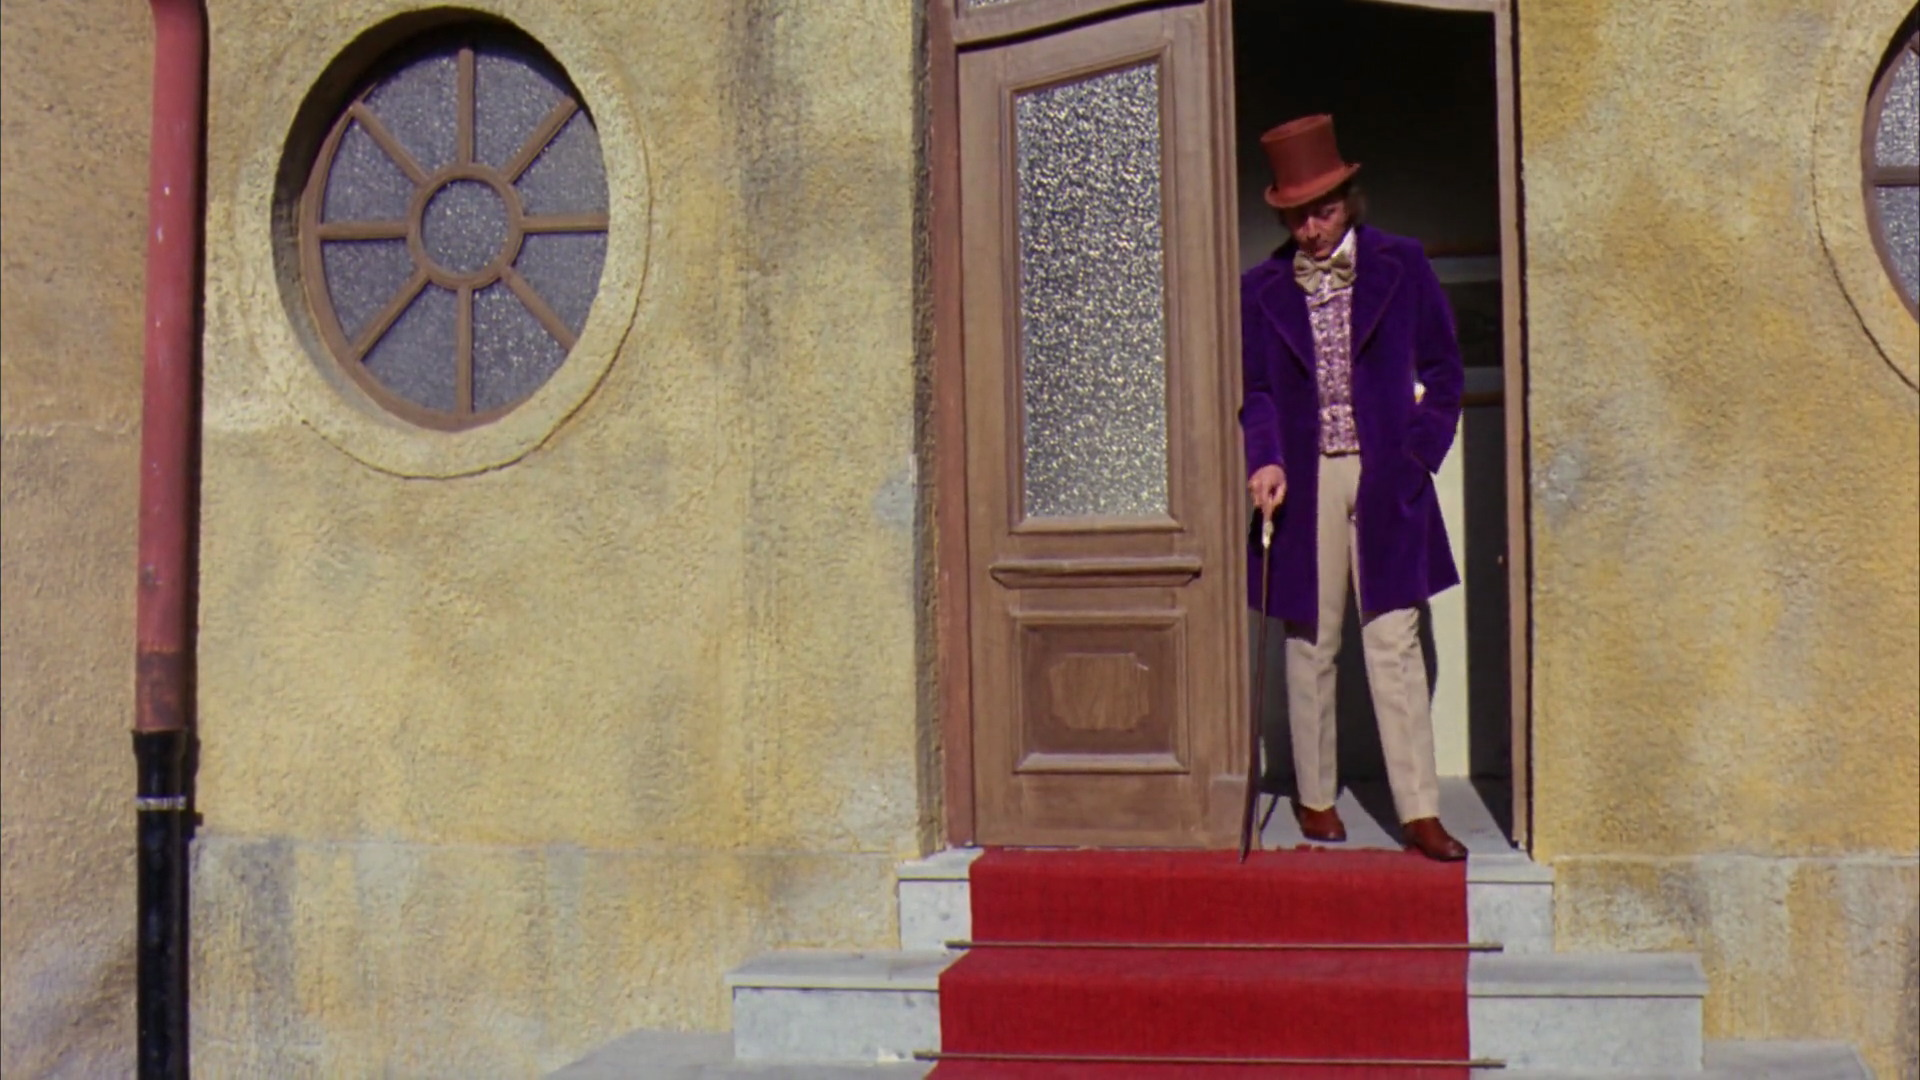 willy-wonka-movie-screencaps.com-5023.jpg